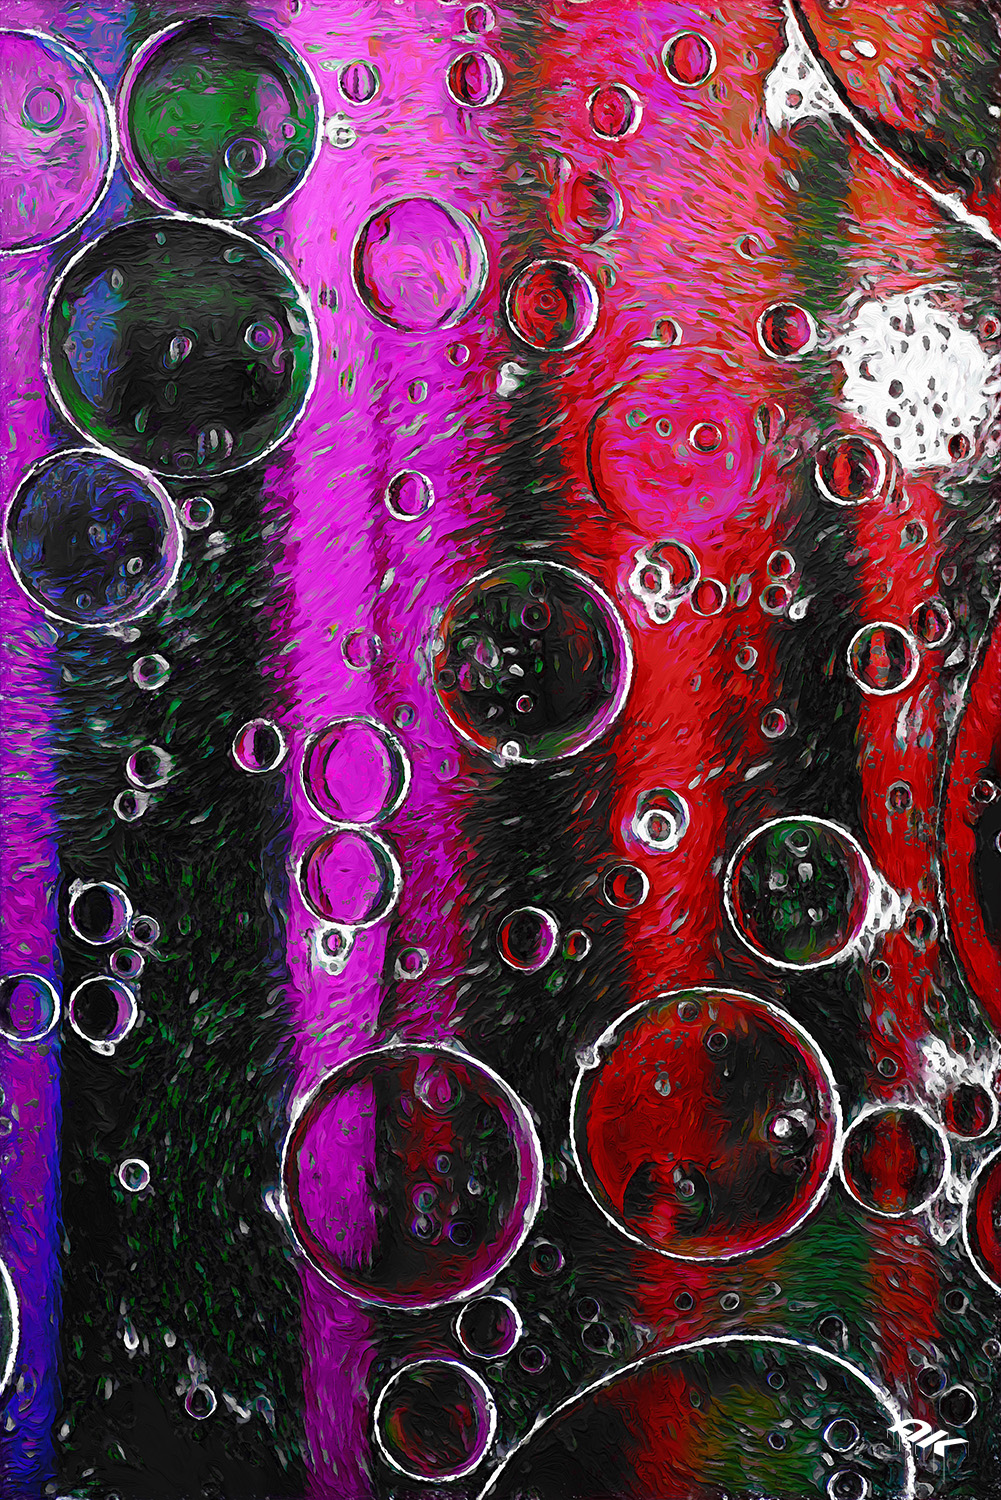 Pink and purple abstract pattern made with oil bubbles on water coming up in motion